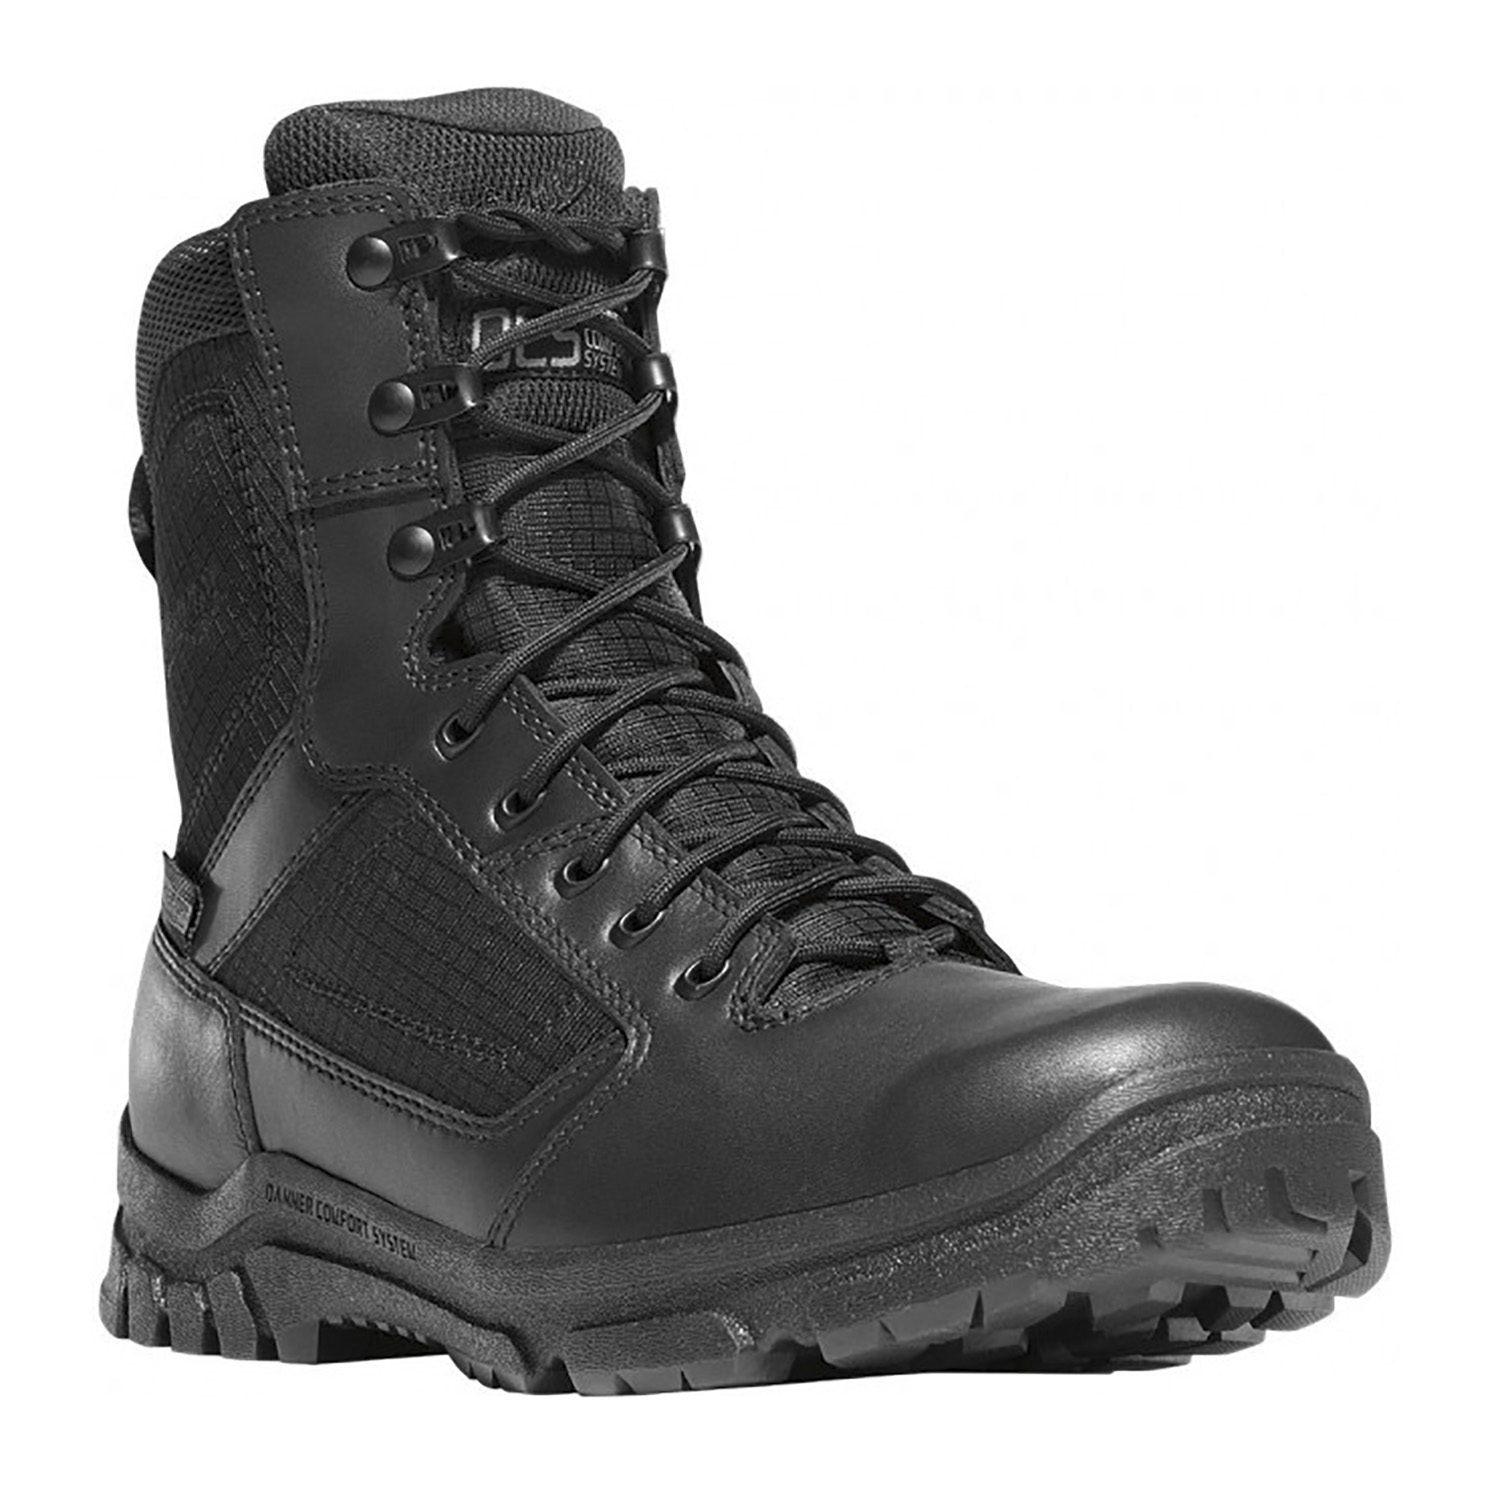 "Danner Men's Lookout 8"" Uniform Boots"